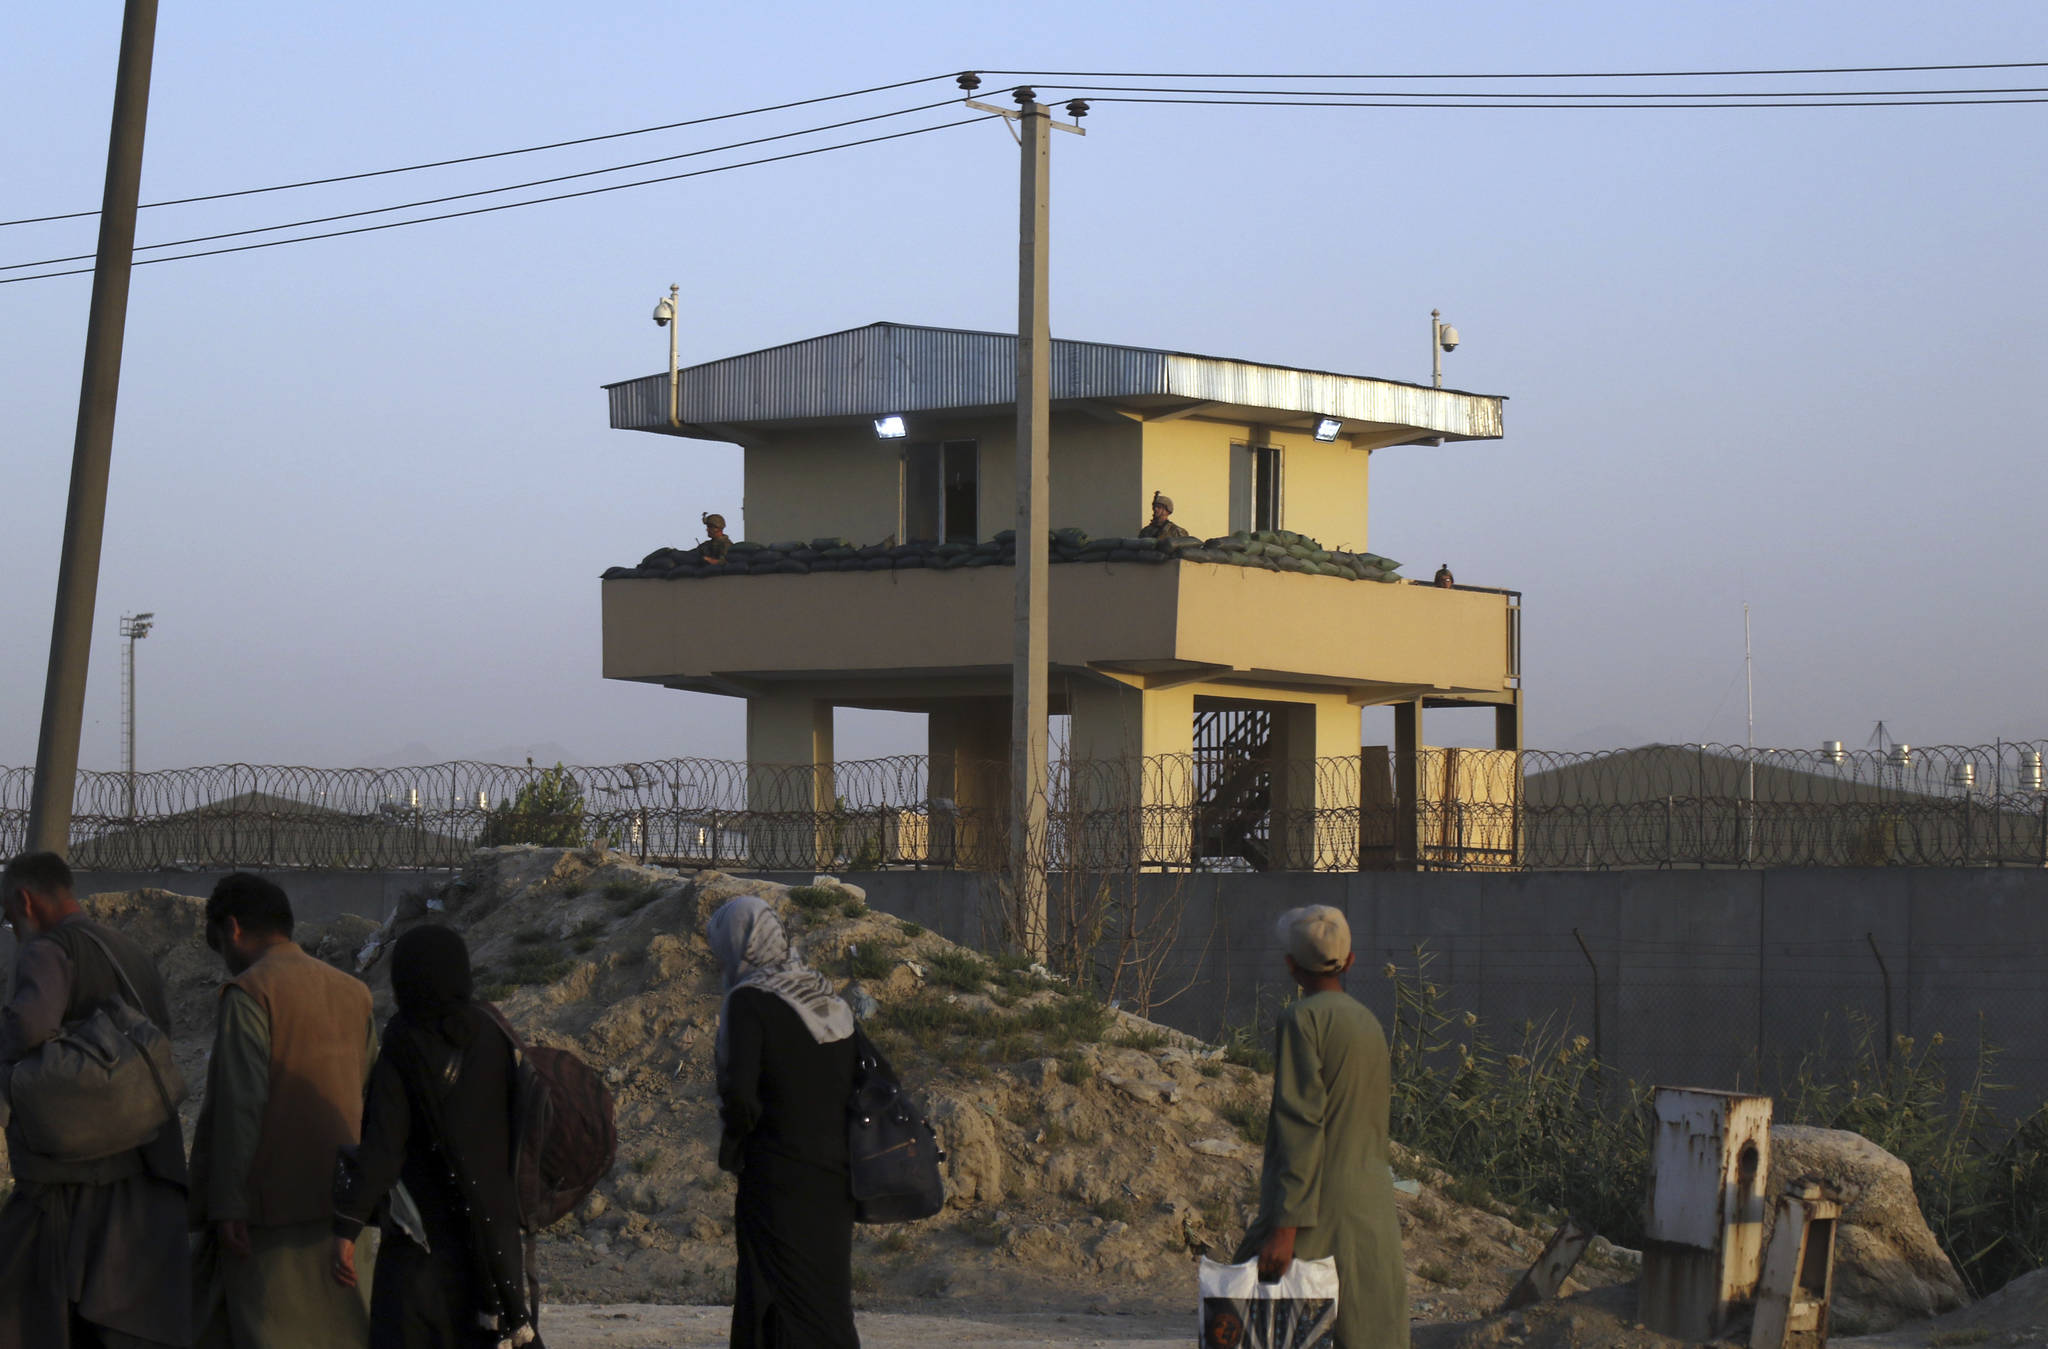 U.S soldiers stand guard at the airport tower near an evacuation control checkpoint during ongoing evacuations at Hamid Karzai International Airport, in Kabul, Afghanistan, Wednesday, Aug. 25, 2021. The Taliban wrested back control of Afghanistan nearly 20 years after they were ousted in a U.S.-led invasion following the 9/11 attacks. Their return to power has pushed many Afghans to flee, fearing reprisals from the fighters or a return to the brutal rule they imposed when they last ran the country. (AP Photo)